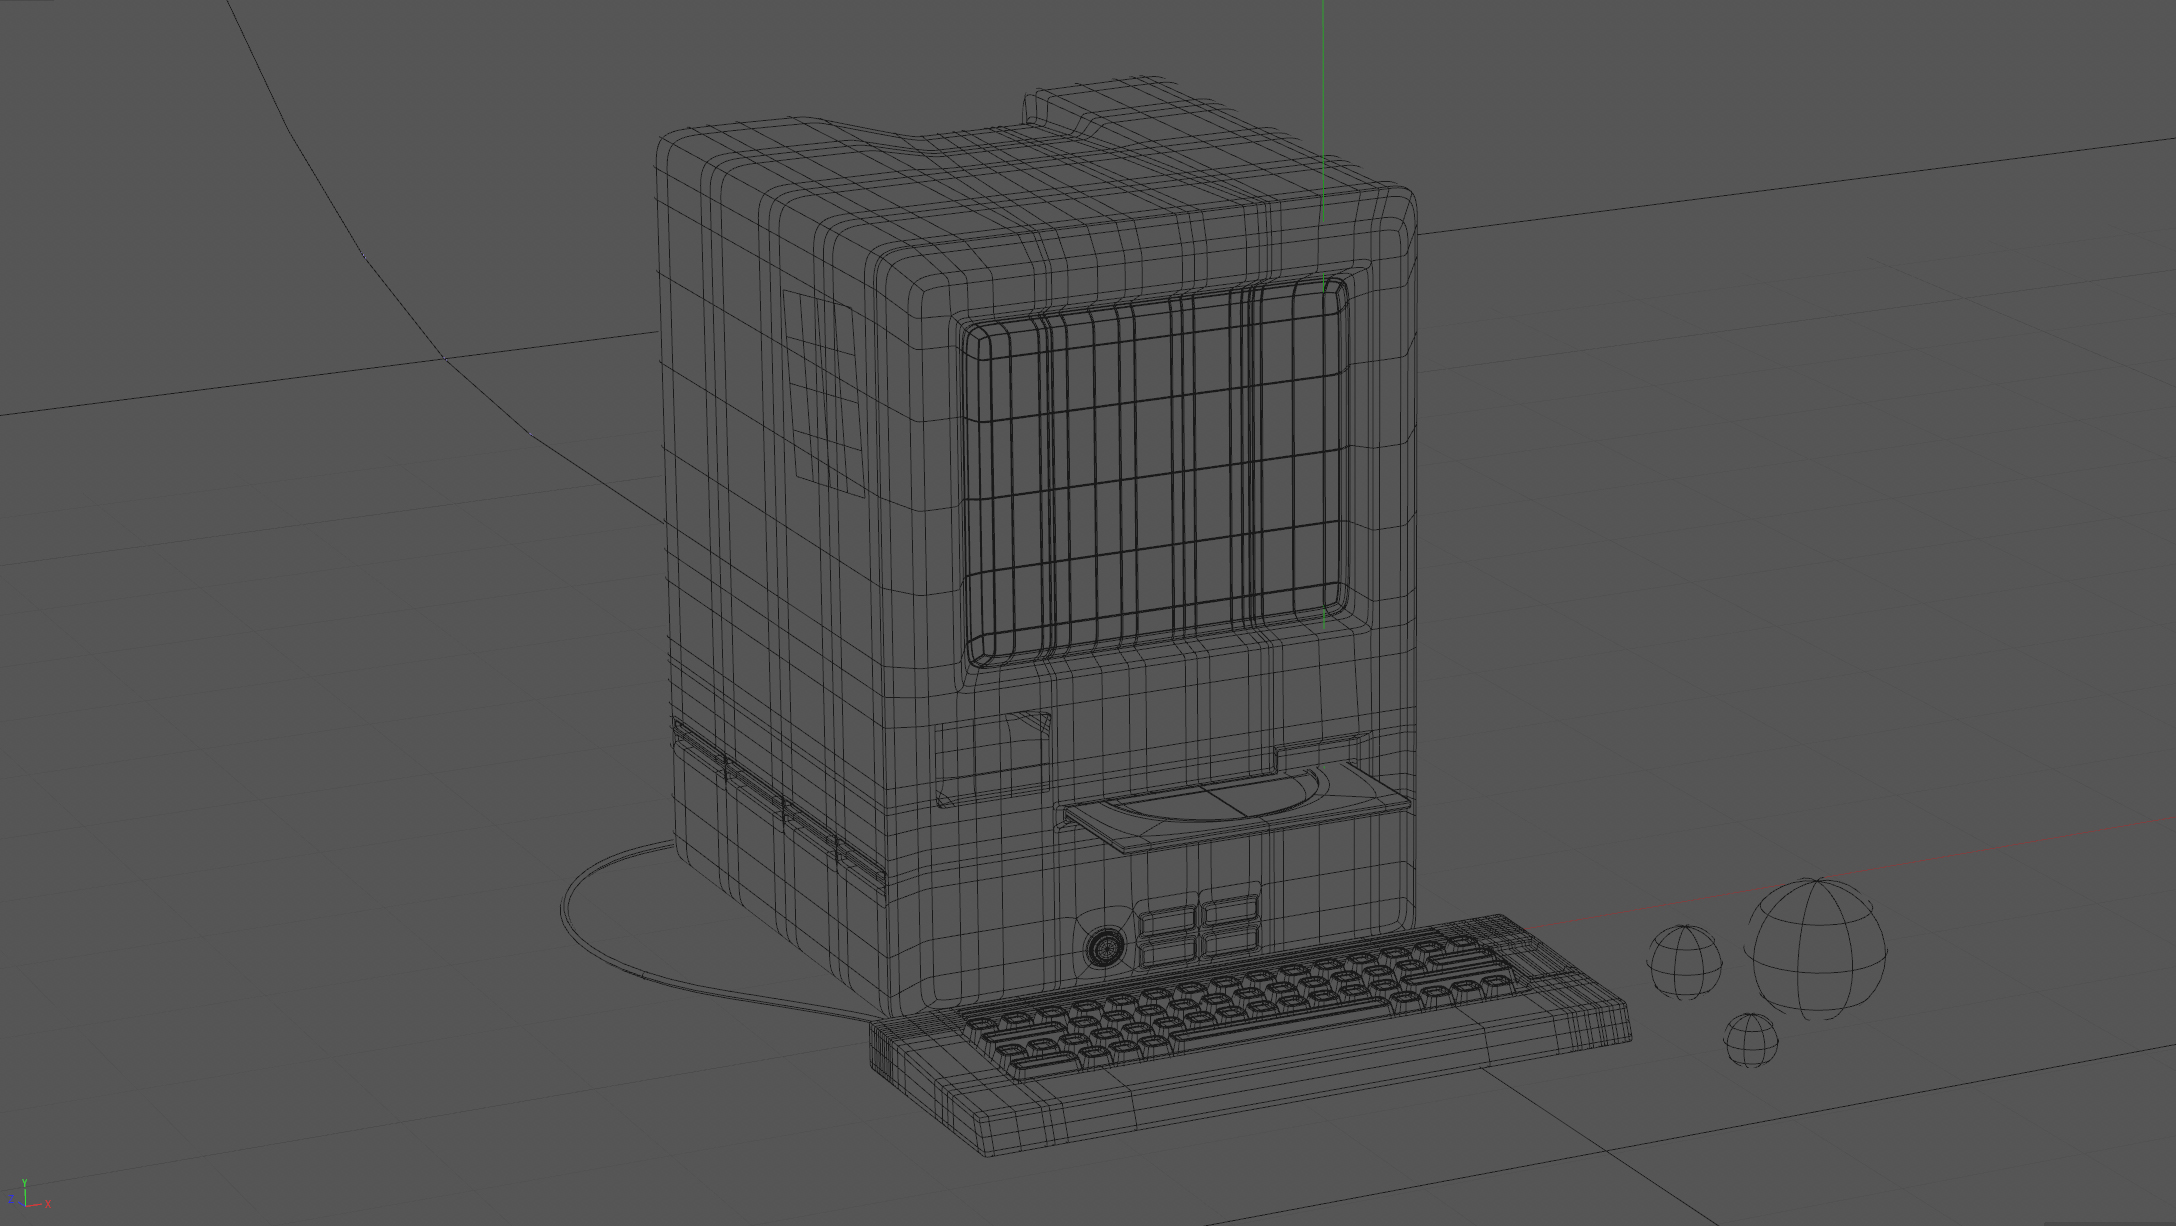 retro_pc_wireframe